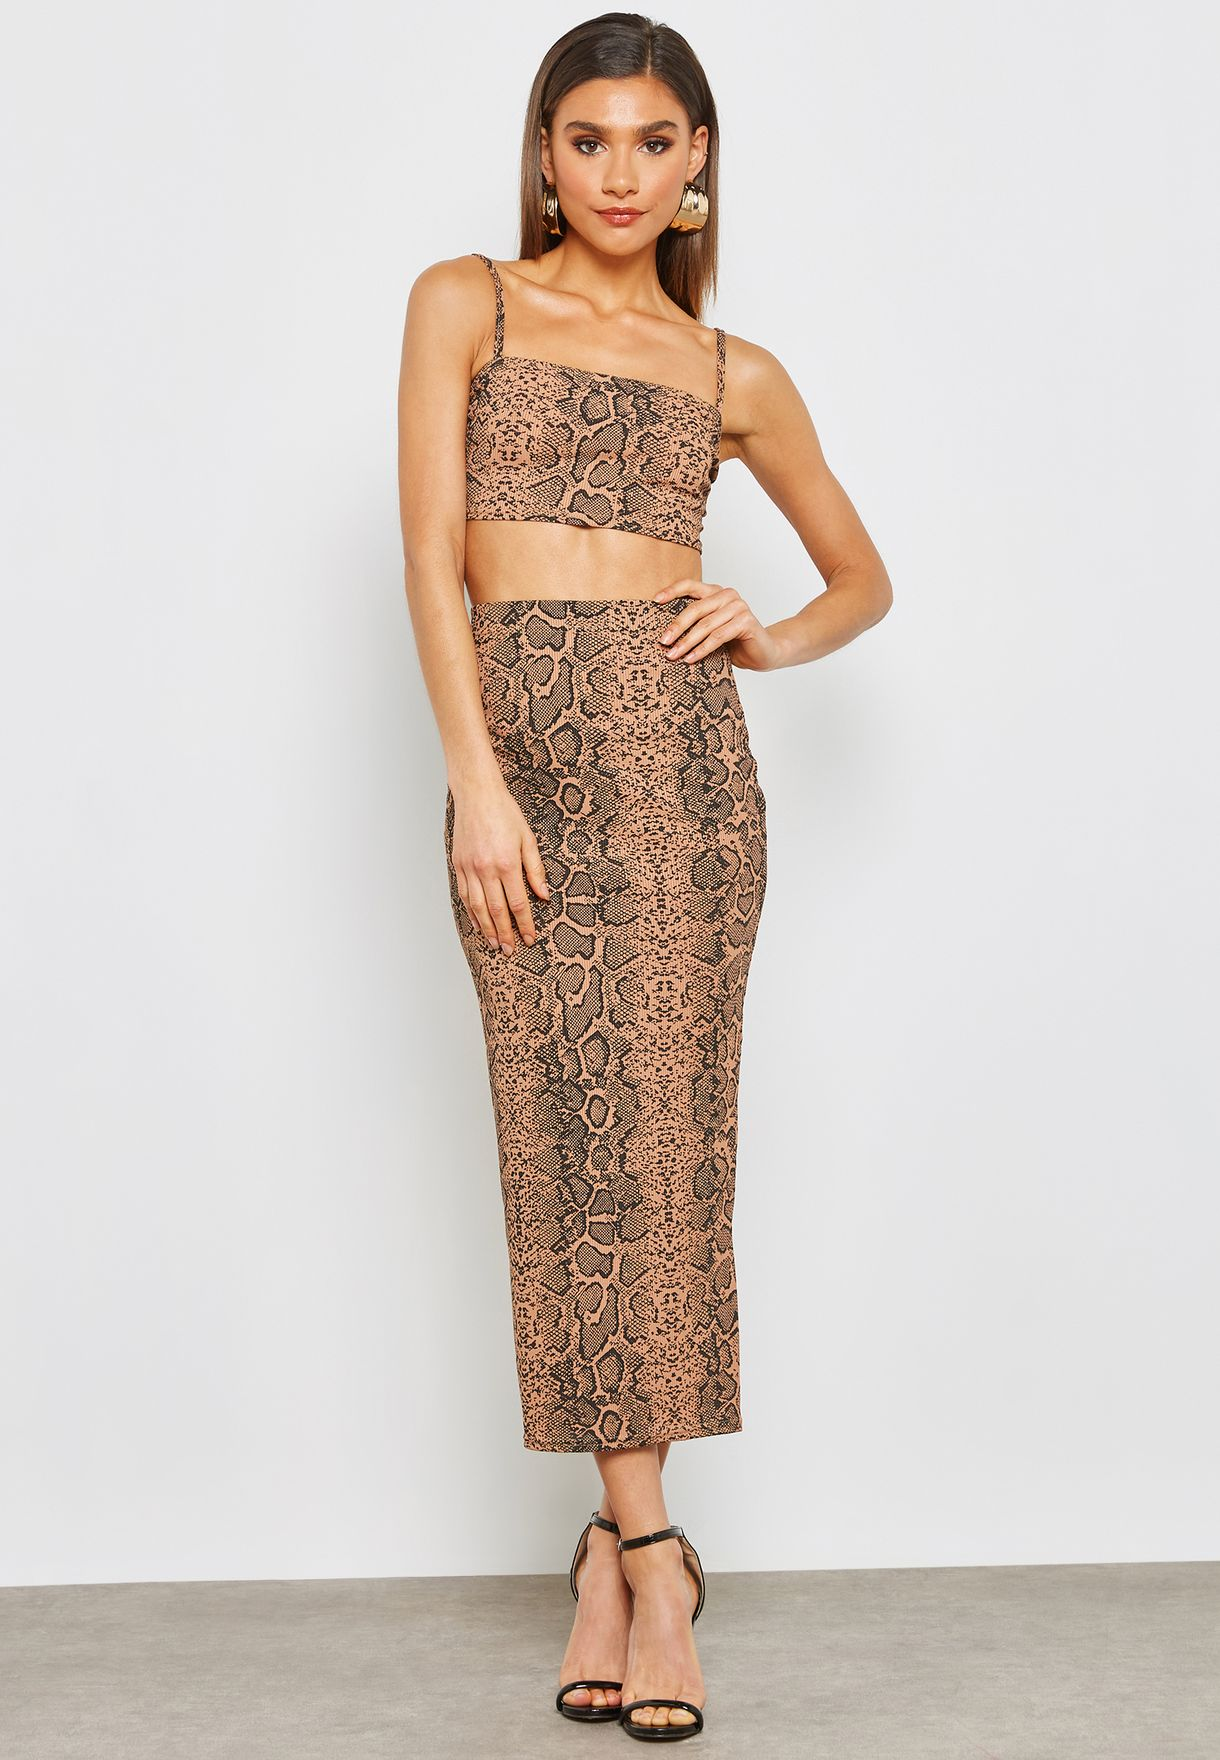 a3456ae9f700 Shop Missguided prints Printed Midi Skirt Co-ord Set S10000416 for ...